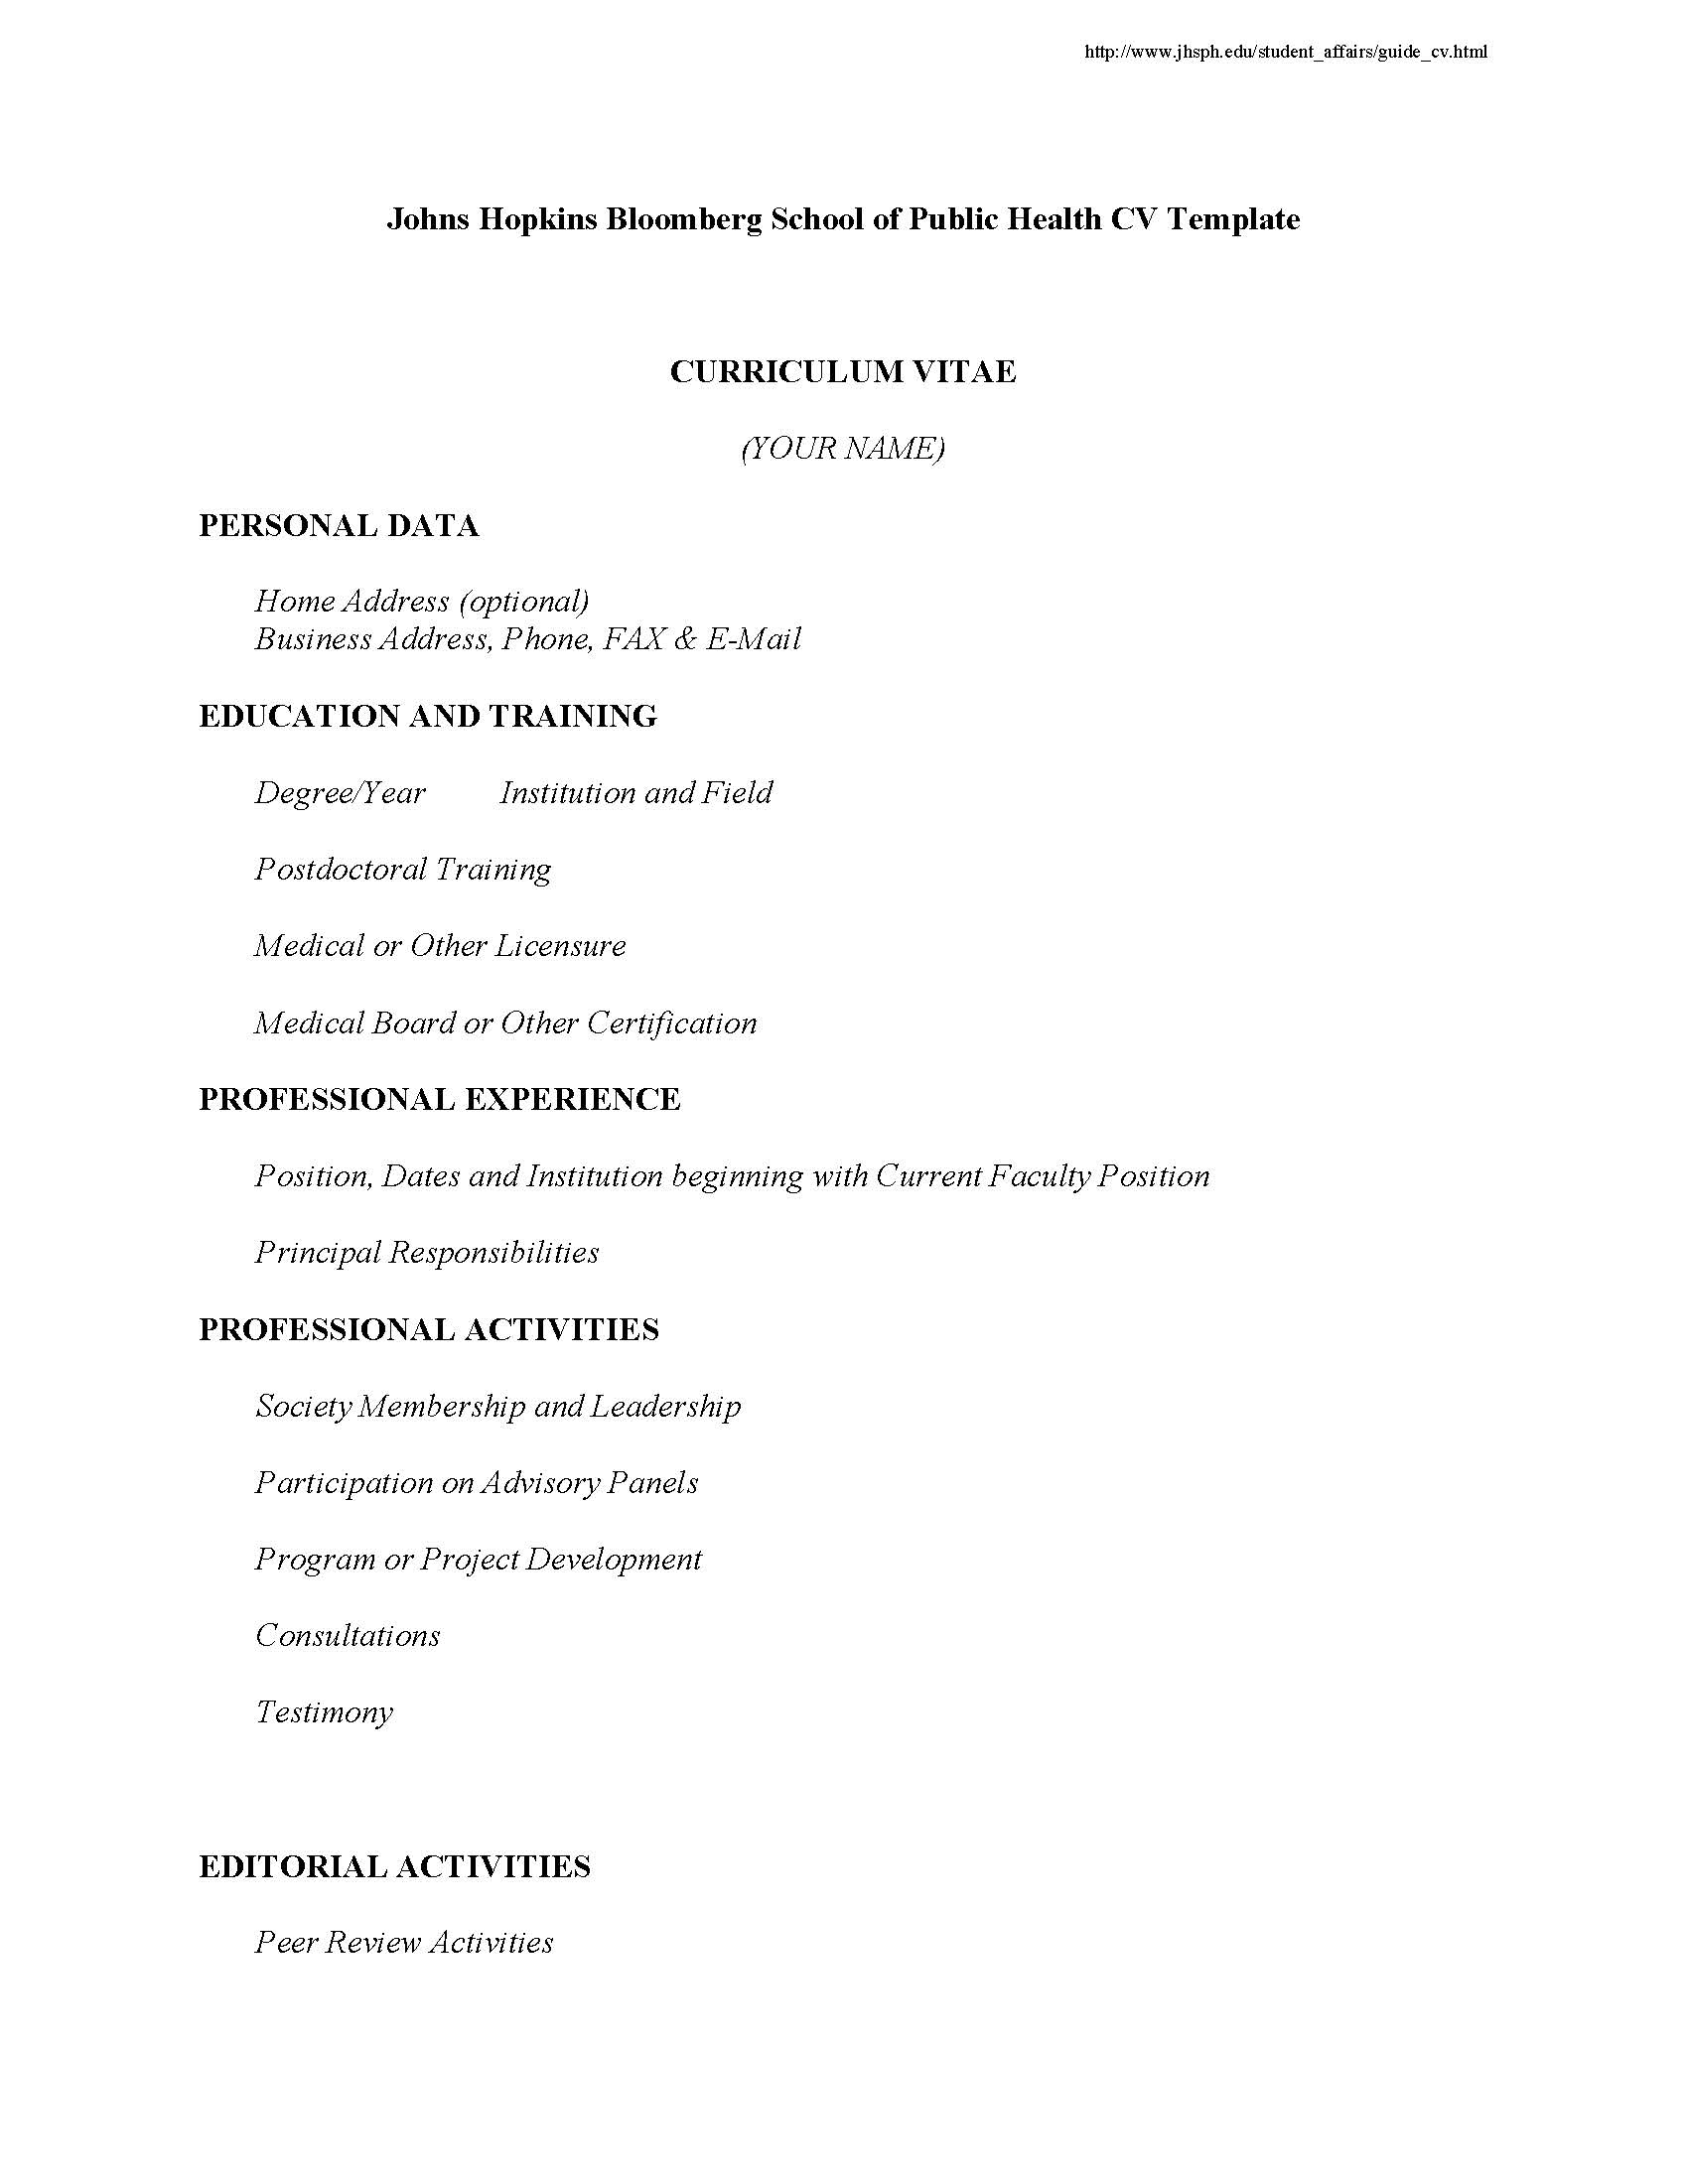 Charming JHSPH CV Template  Public Health Resumes